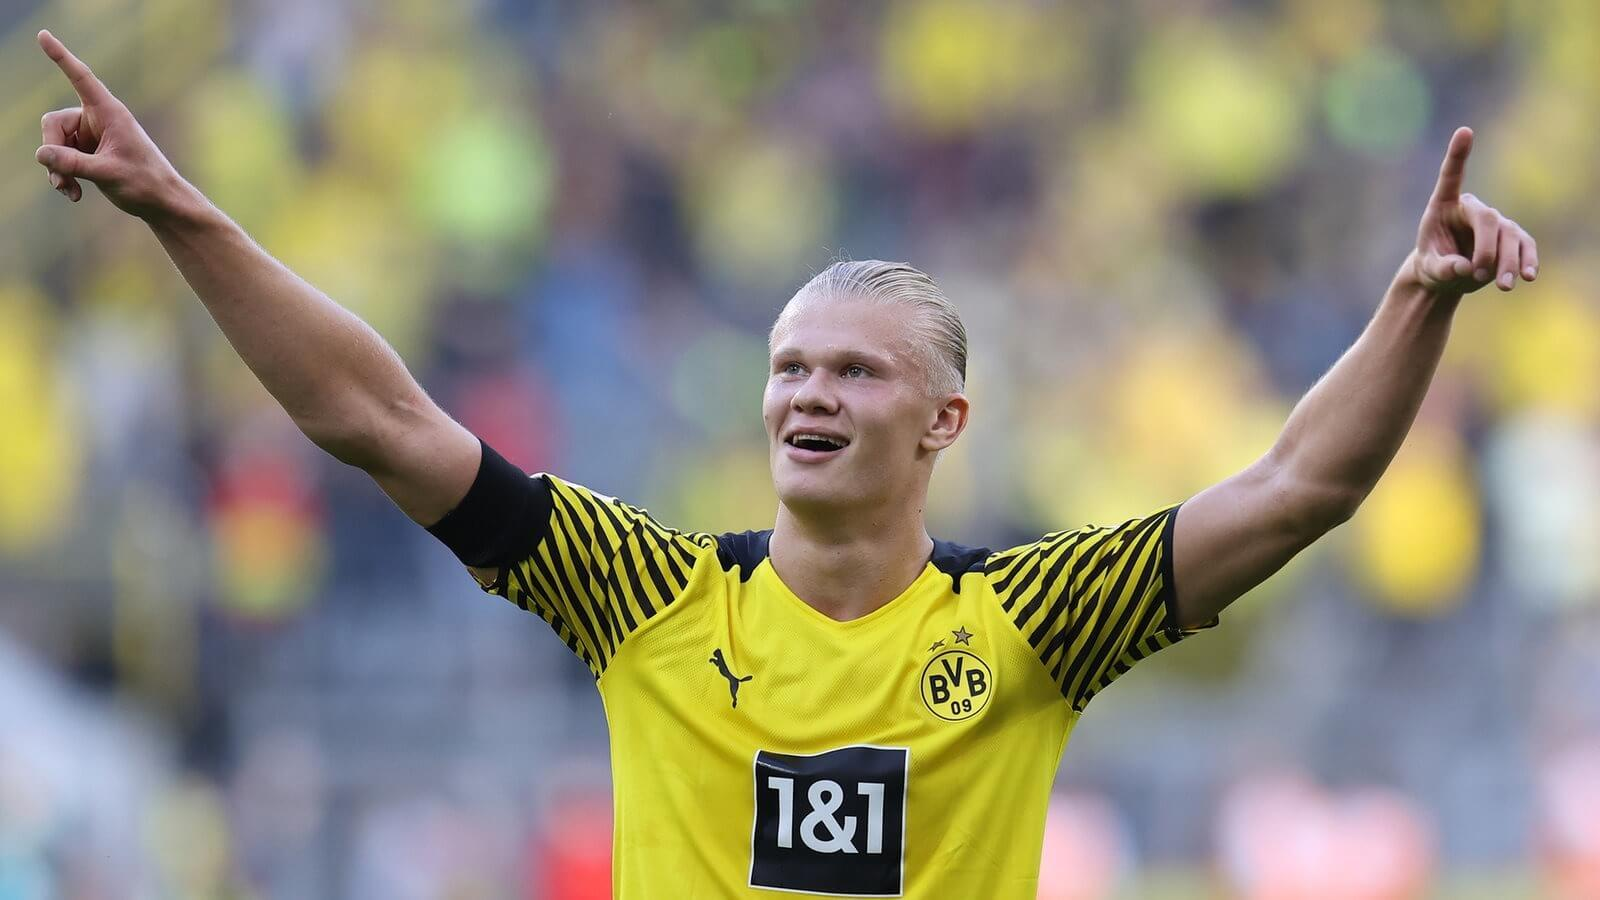 Dortmund coach Marco Rose suggests Haaland could improve